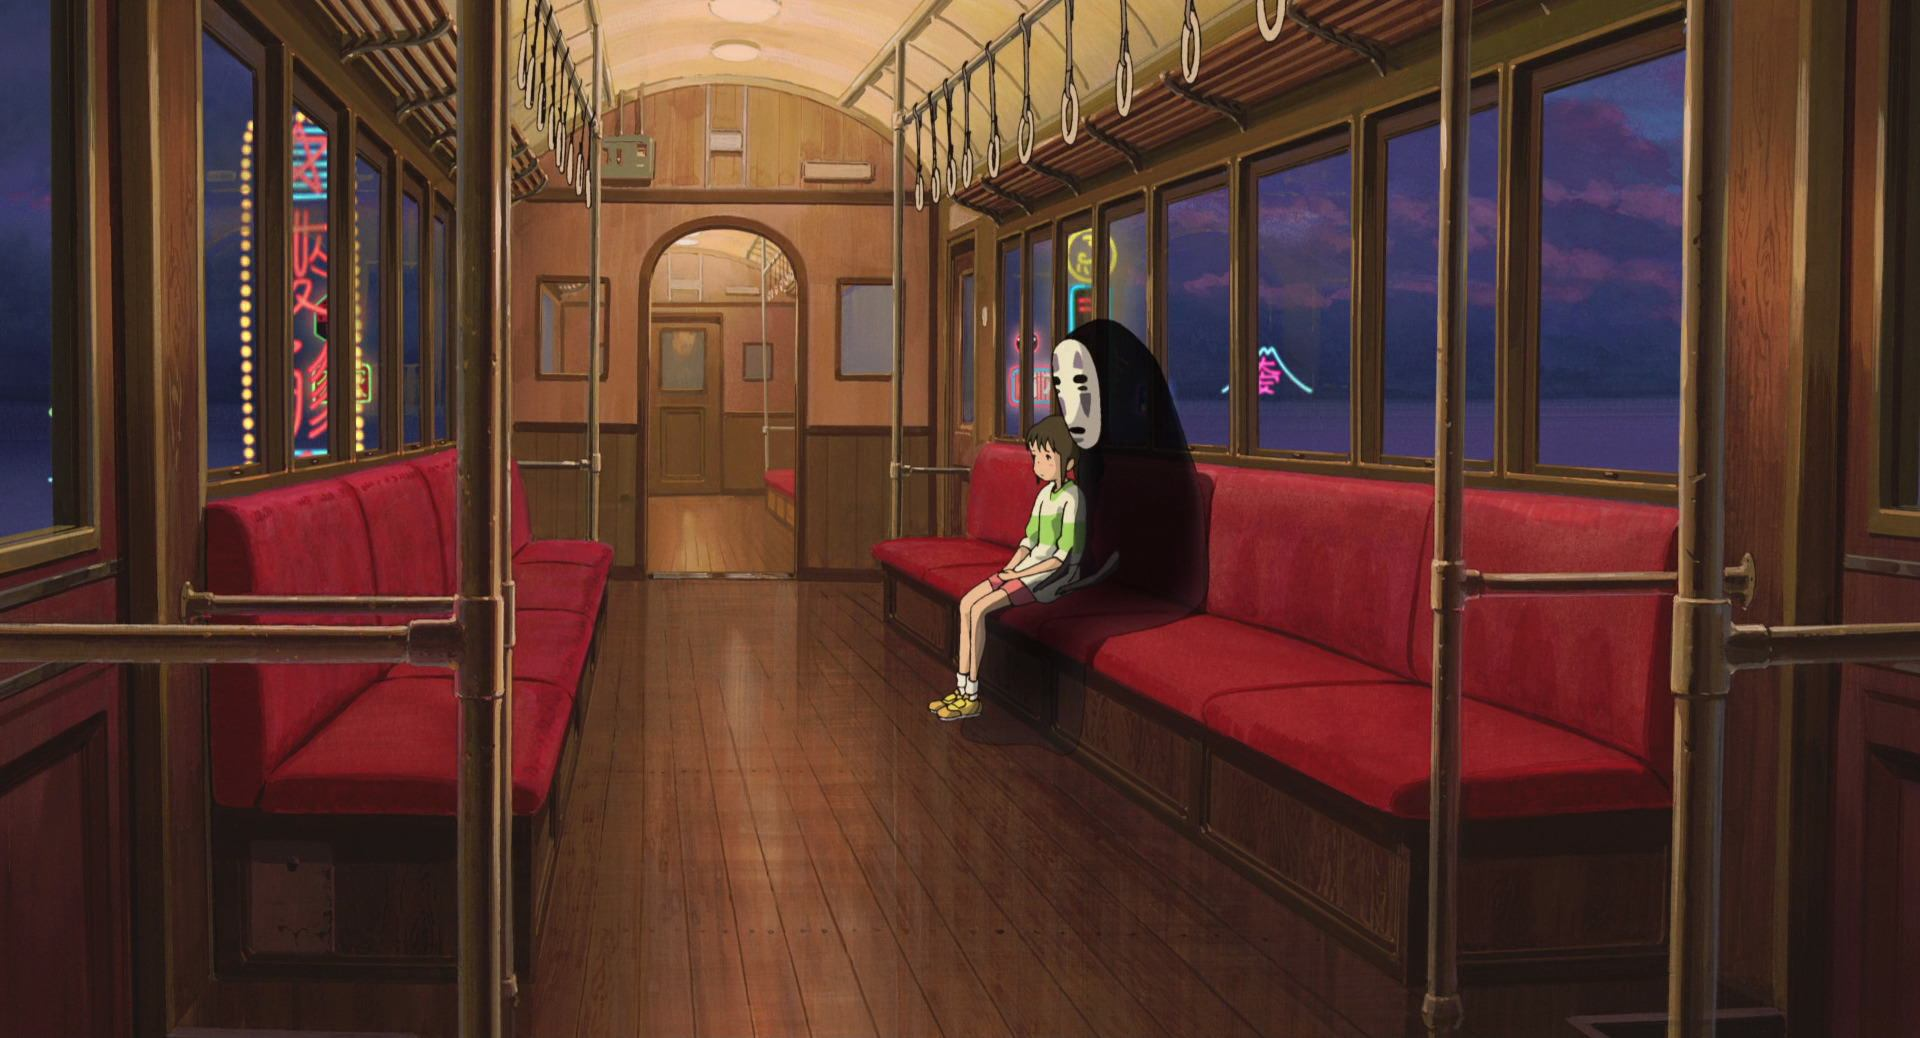 spirited away: Chihiro and No-Face sit in a train at night